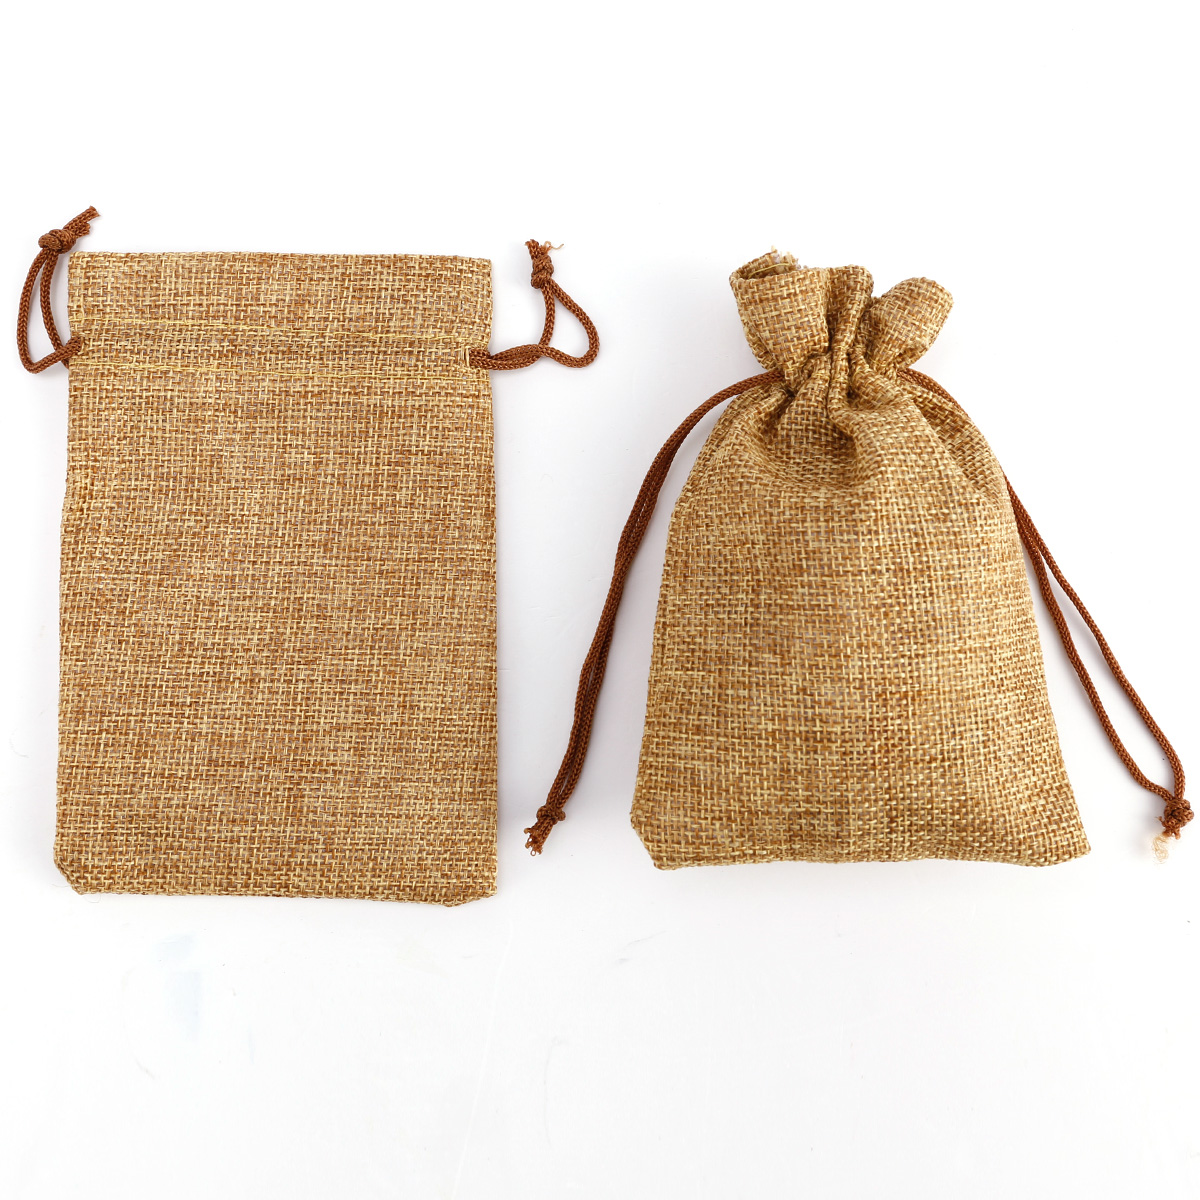 20 natural burlap bags jute hessian drawstring sack small wedding favor gift ebay. Black Bedroom Furniture Sets. Home Design Ideas